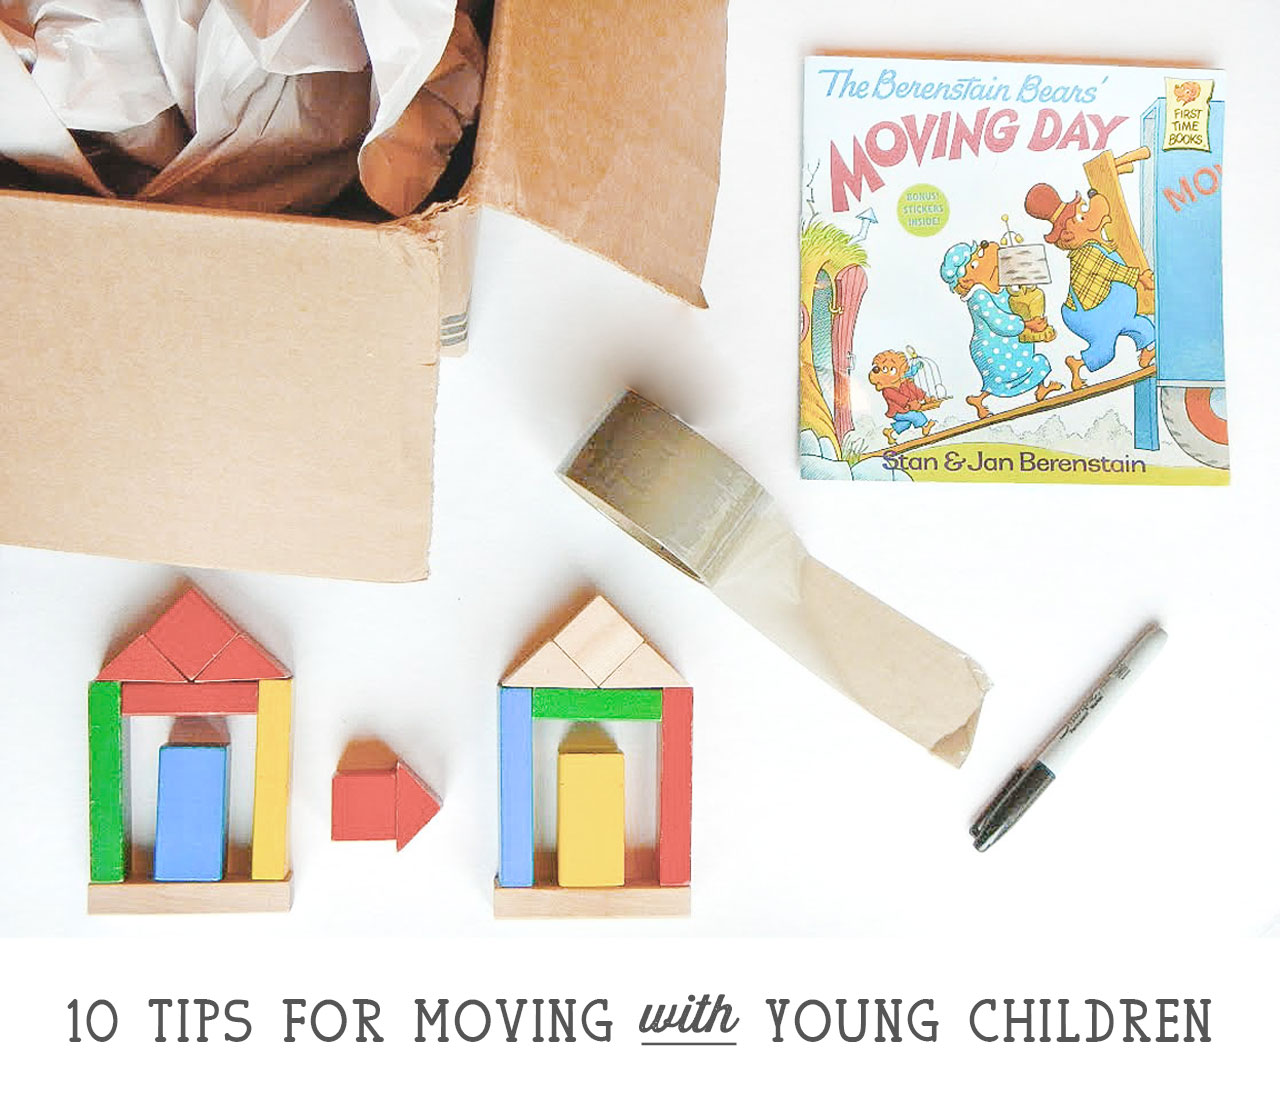 10 Tips for Moving with Young Children